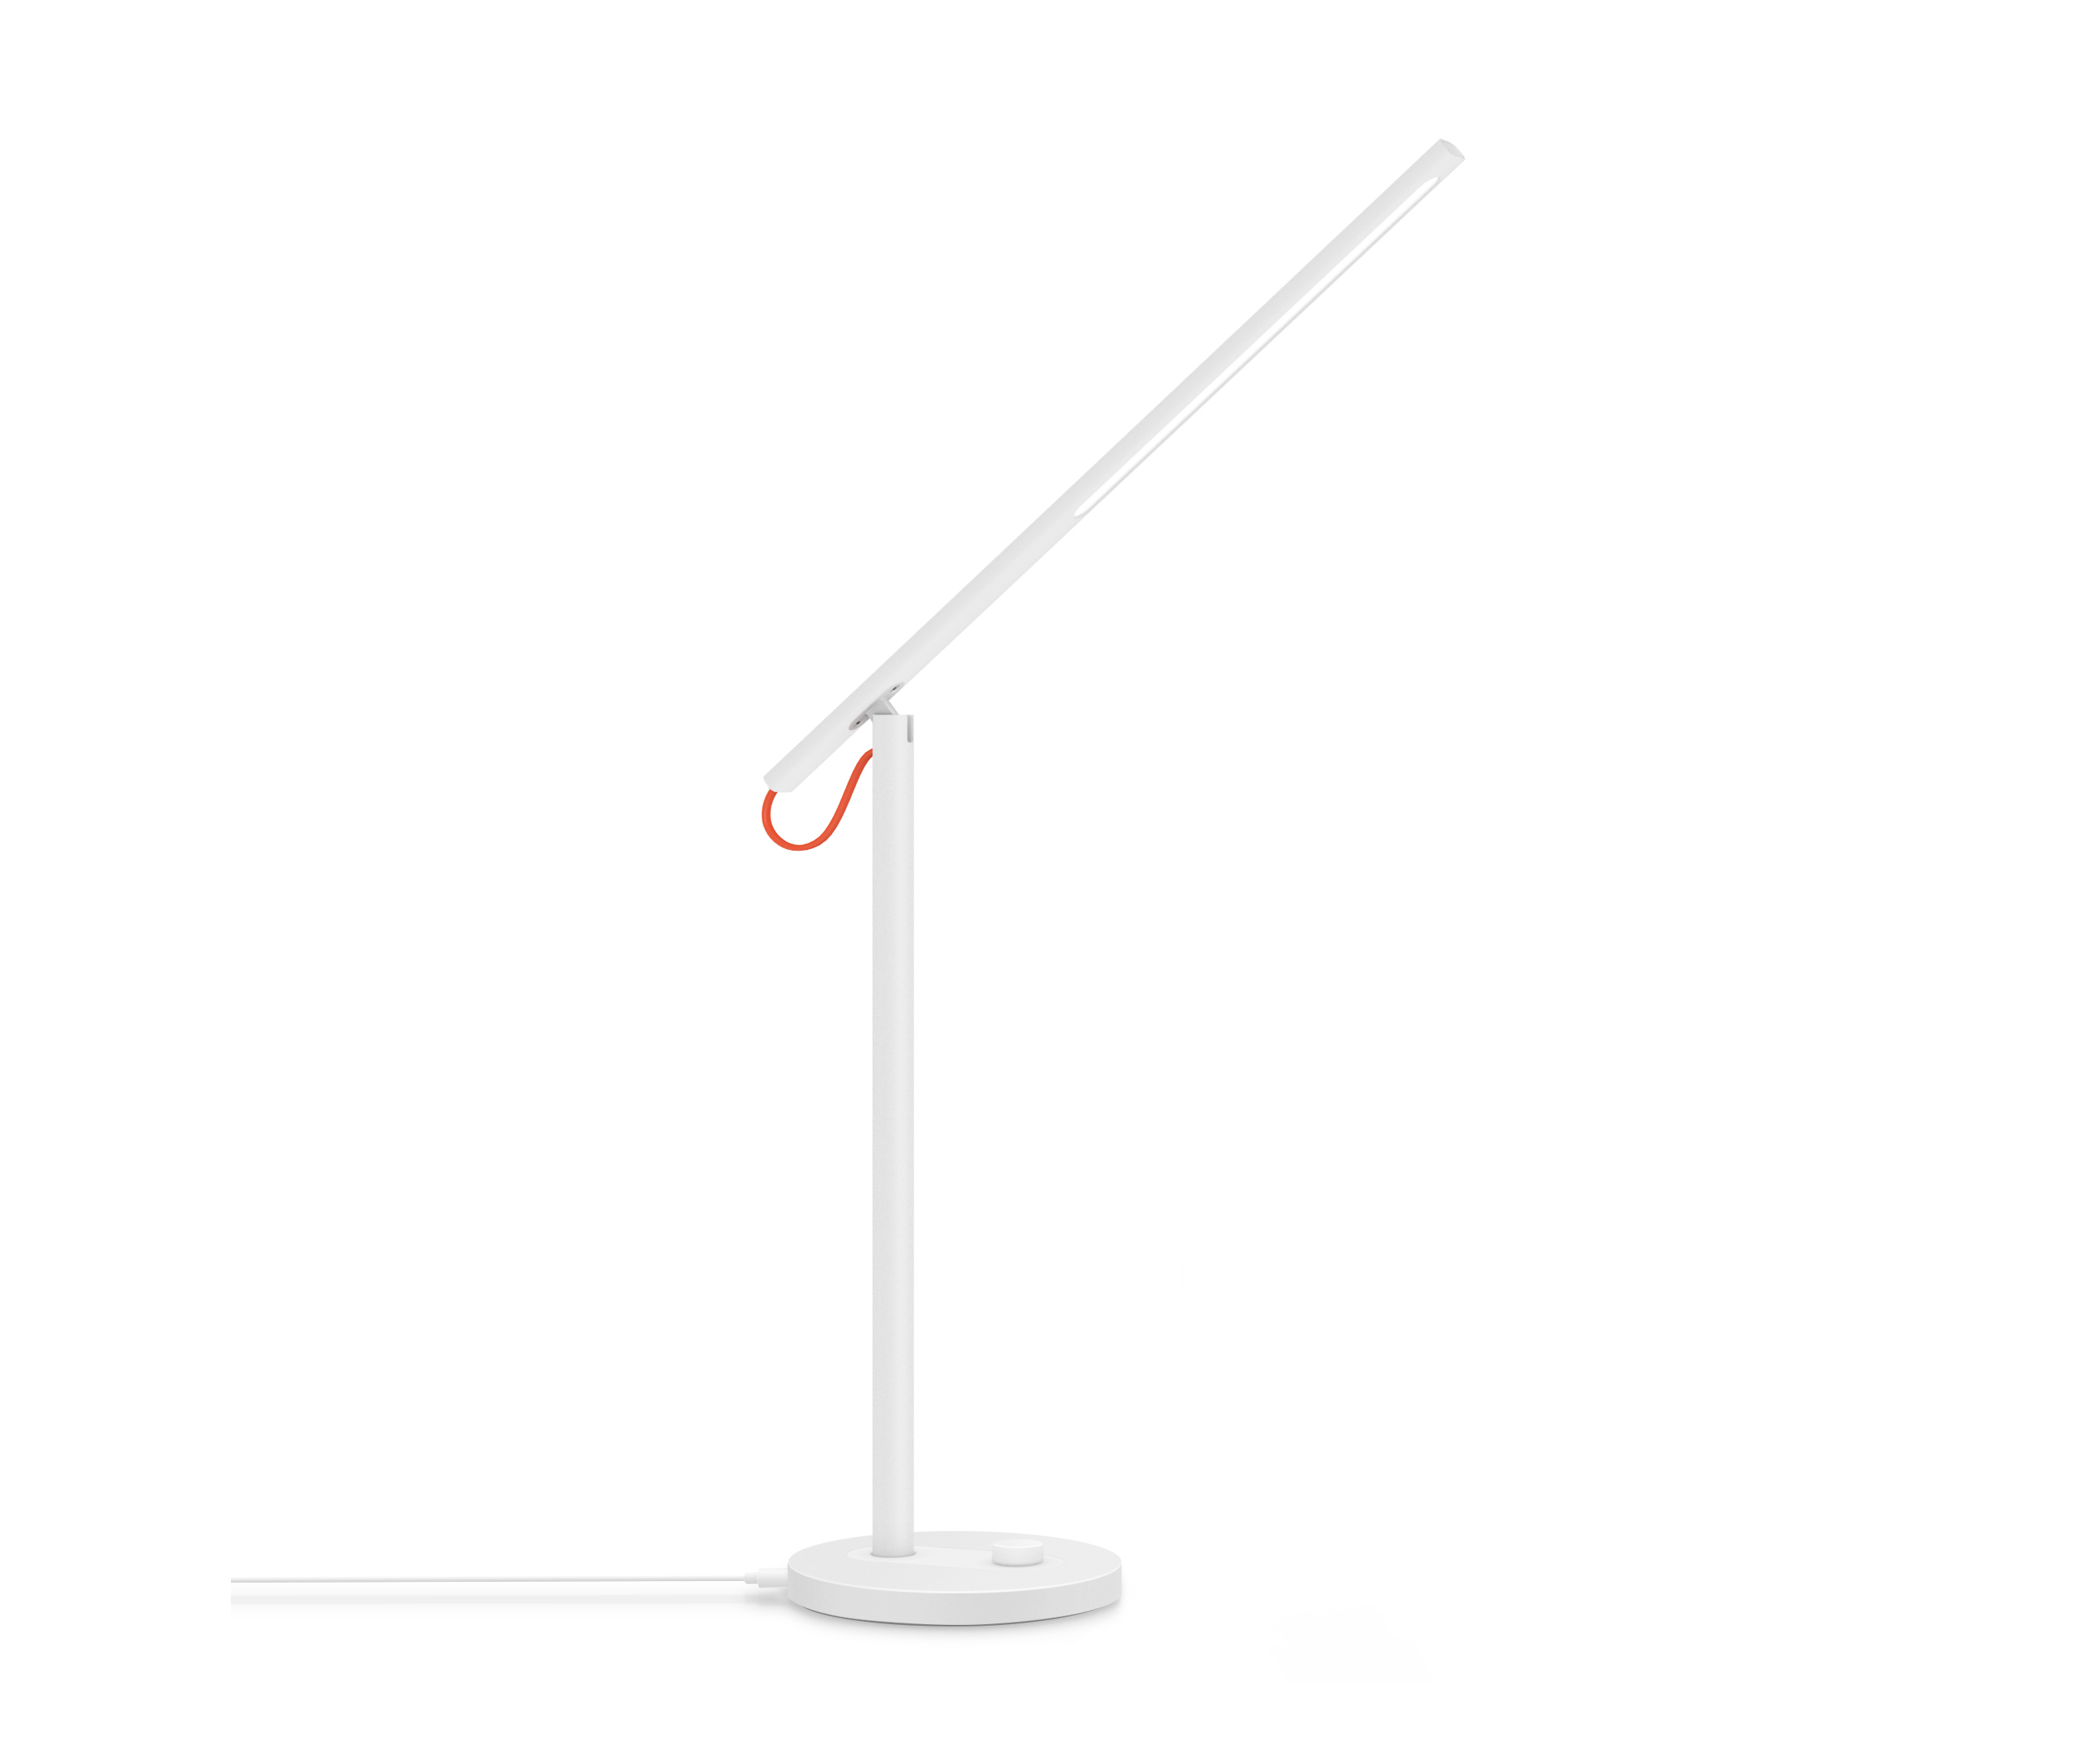 Smart LED Desk Lamp with Adjustable Color Temperature | Xiaomi Mijia Dimmable Wi-Fi Desk Lamp